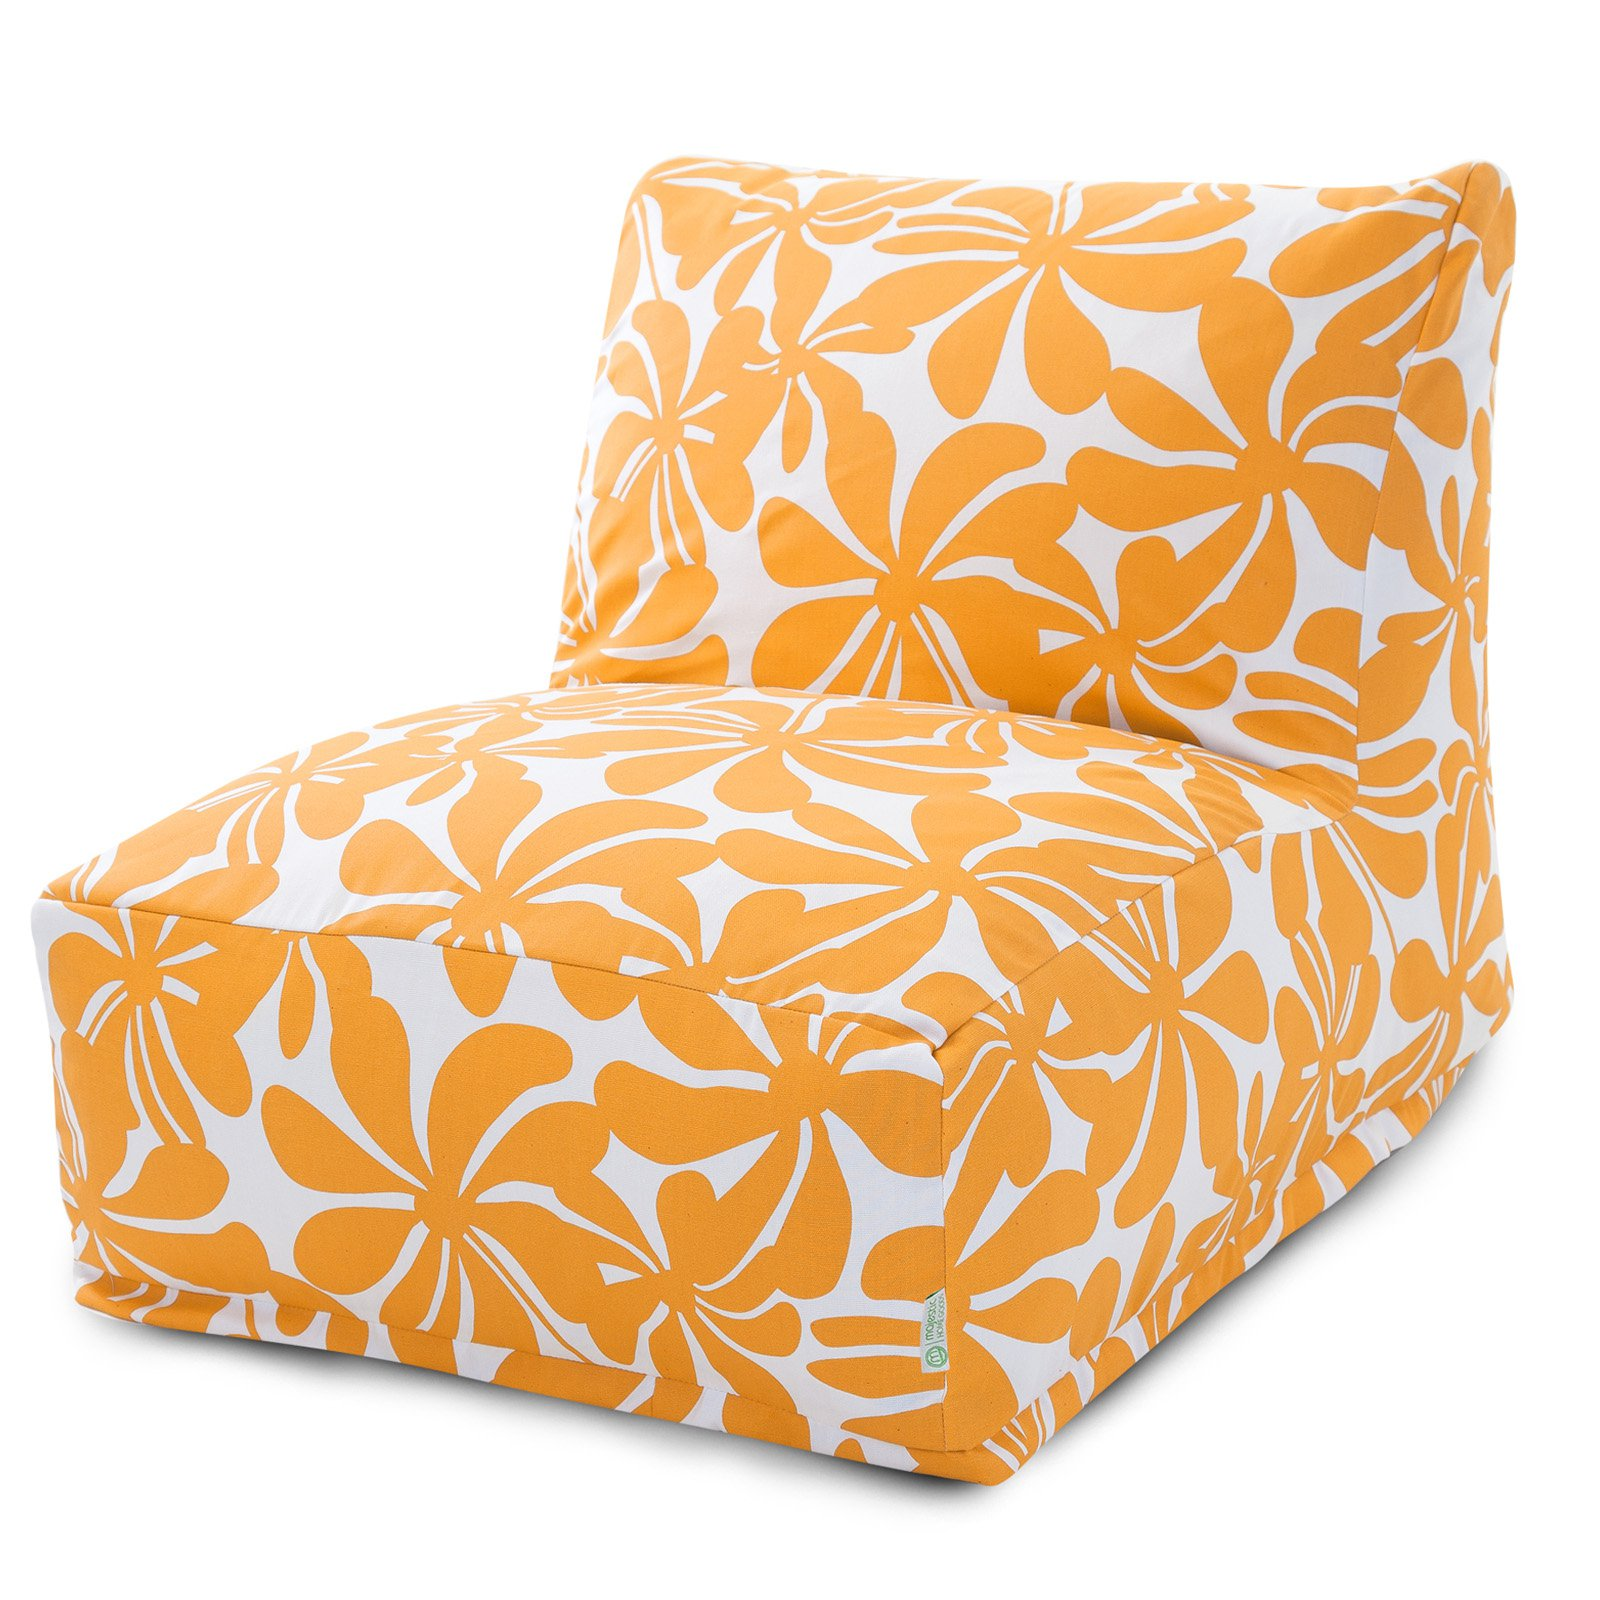 Majestic Home Goods Yellow Plantation Outdoor Bean Bag Chair Lounger